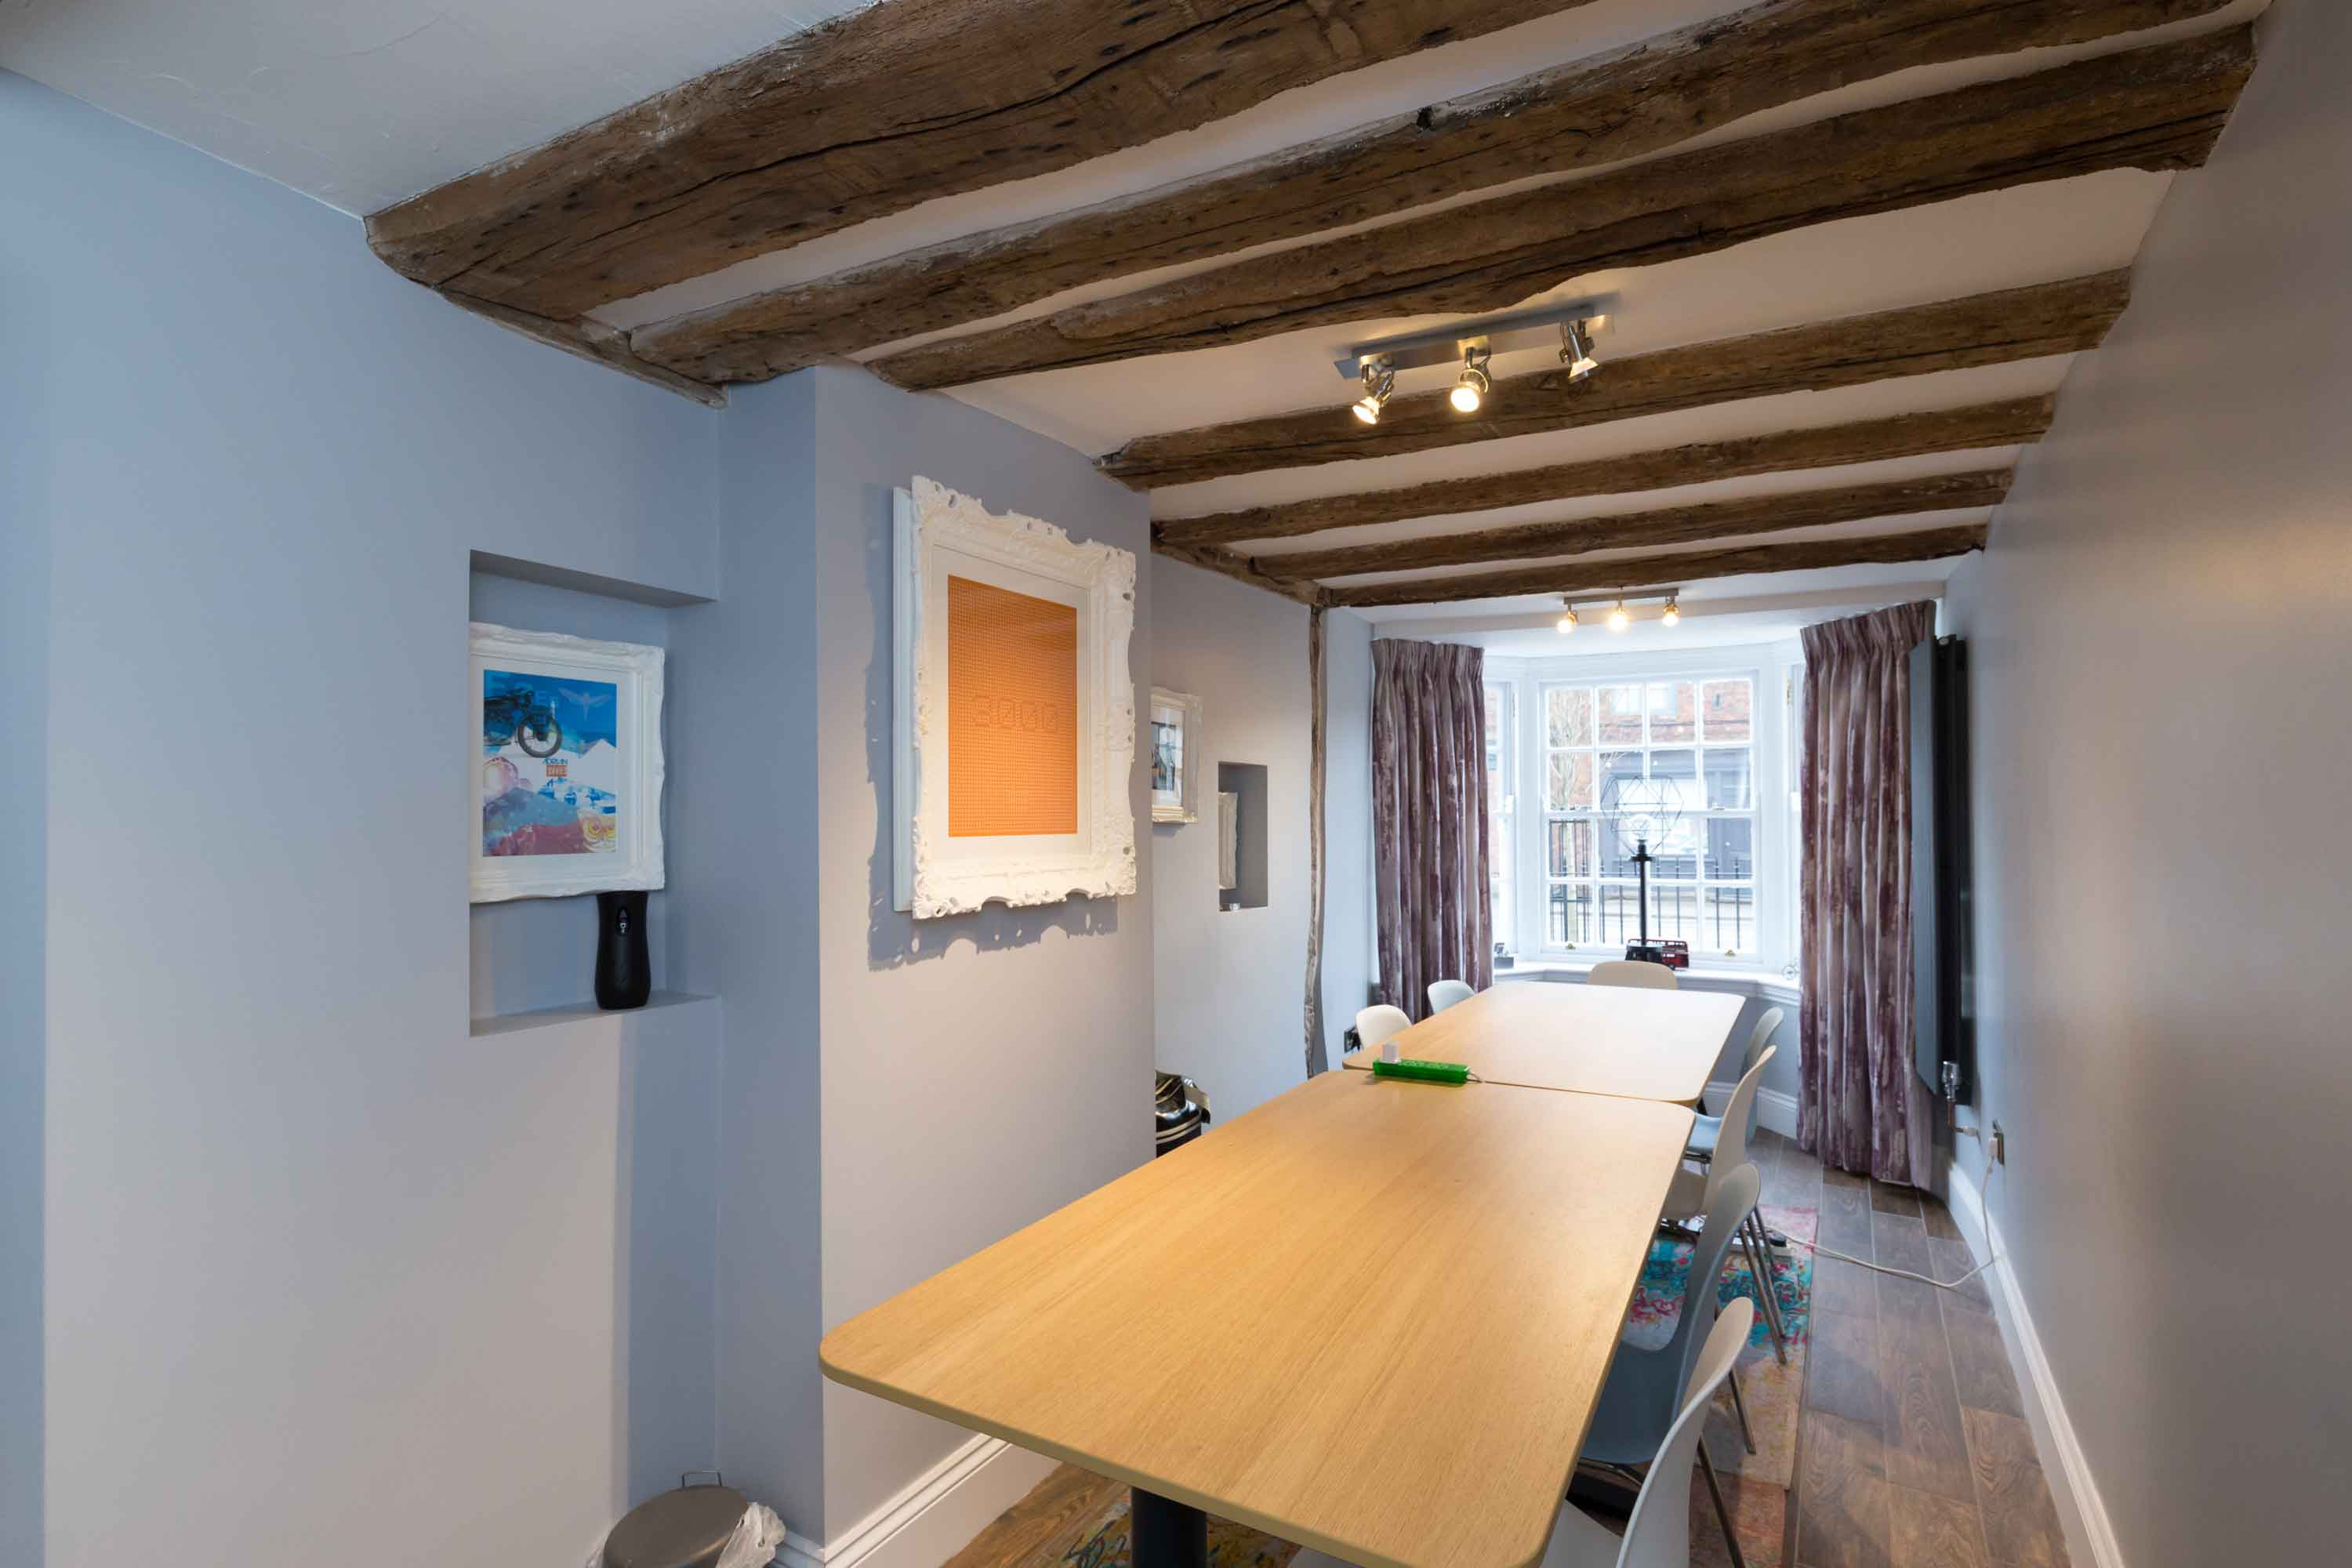 conservation office meeting room table oak beams